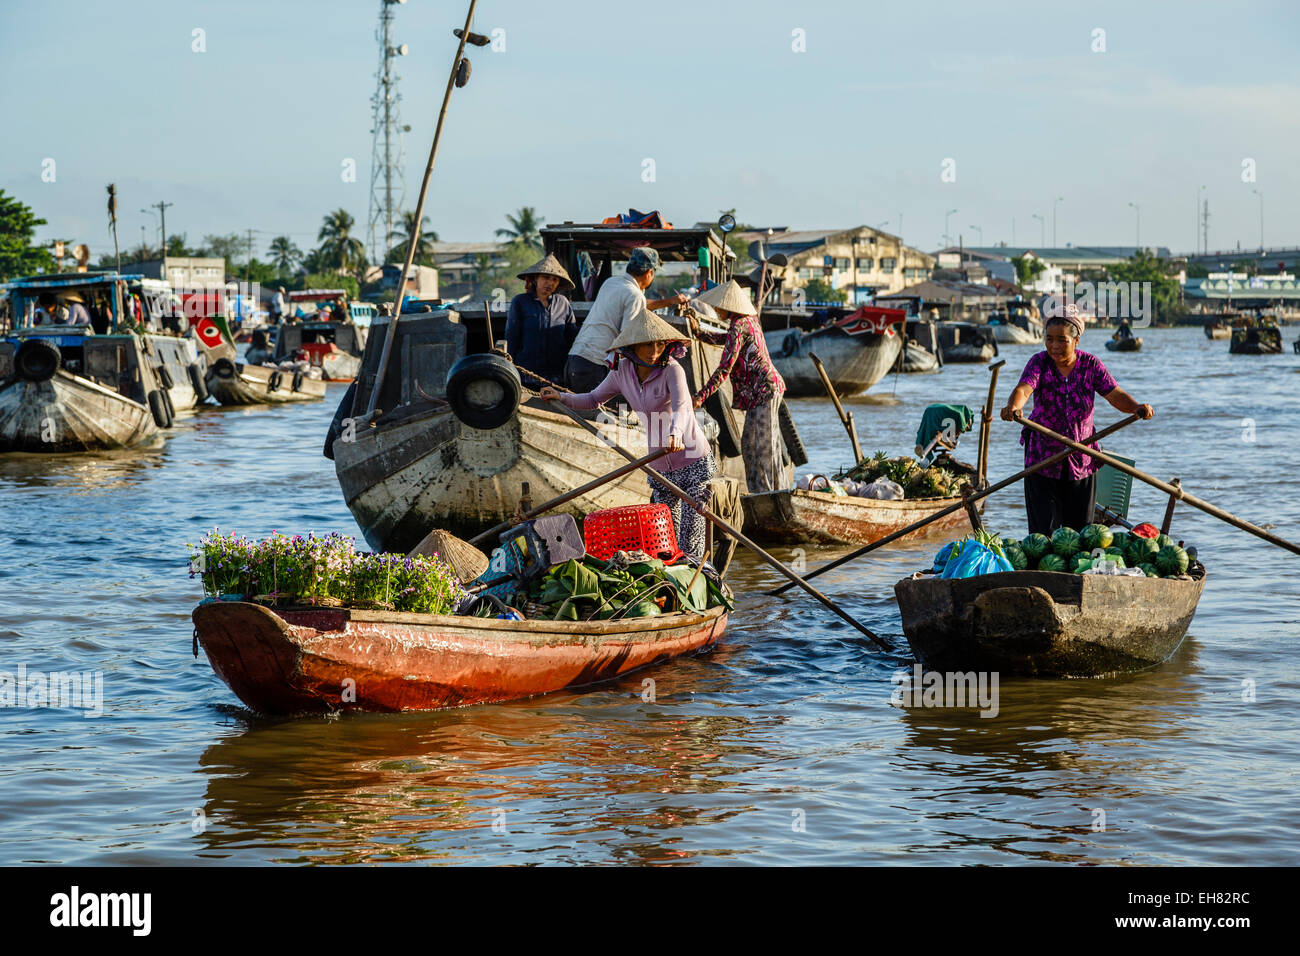 Cai Rang floating market at the Mekong Delta, Can Tho, Vietnam, Indochina, Southeast Asia, Asia - Stock Image